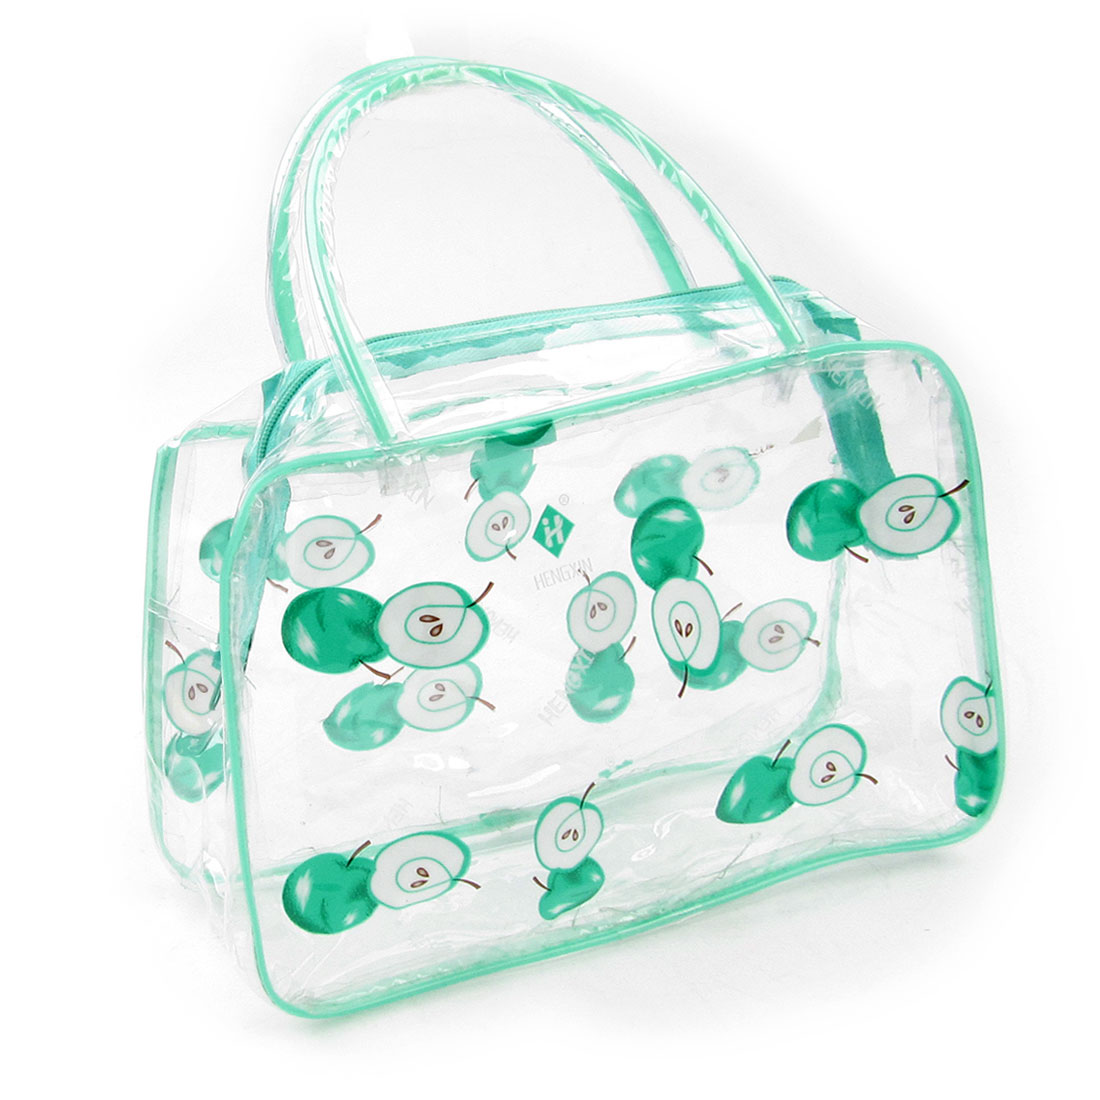 Lady Portable Apple Print Light Green Clear Plastic Cosmetic Makeup Bag Case